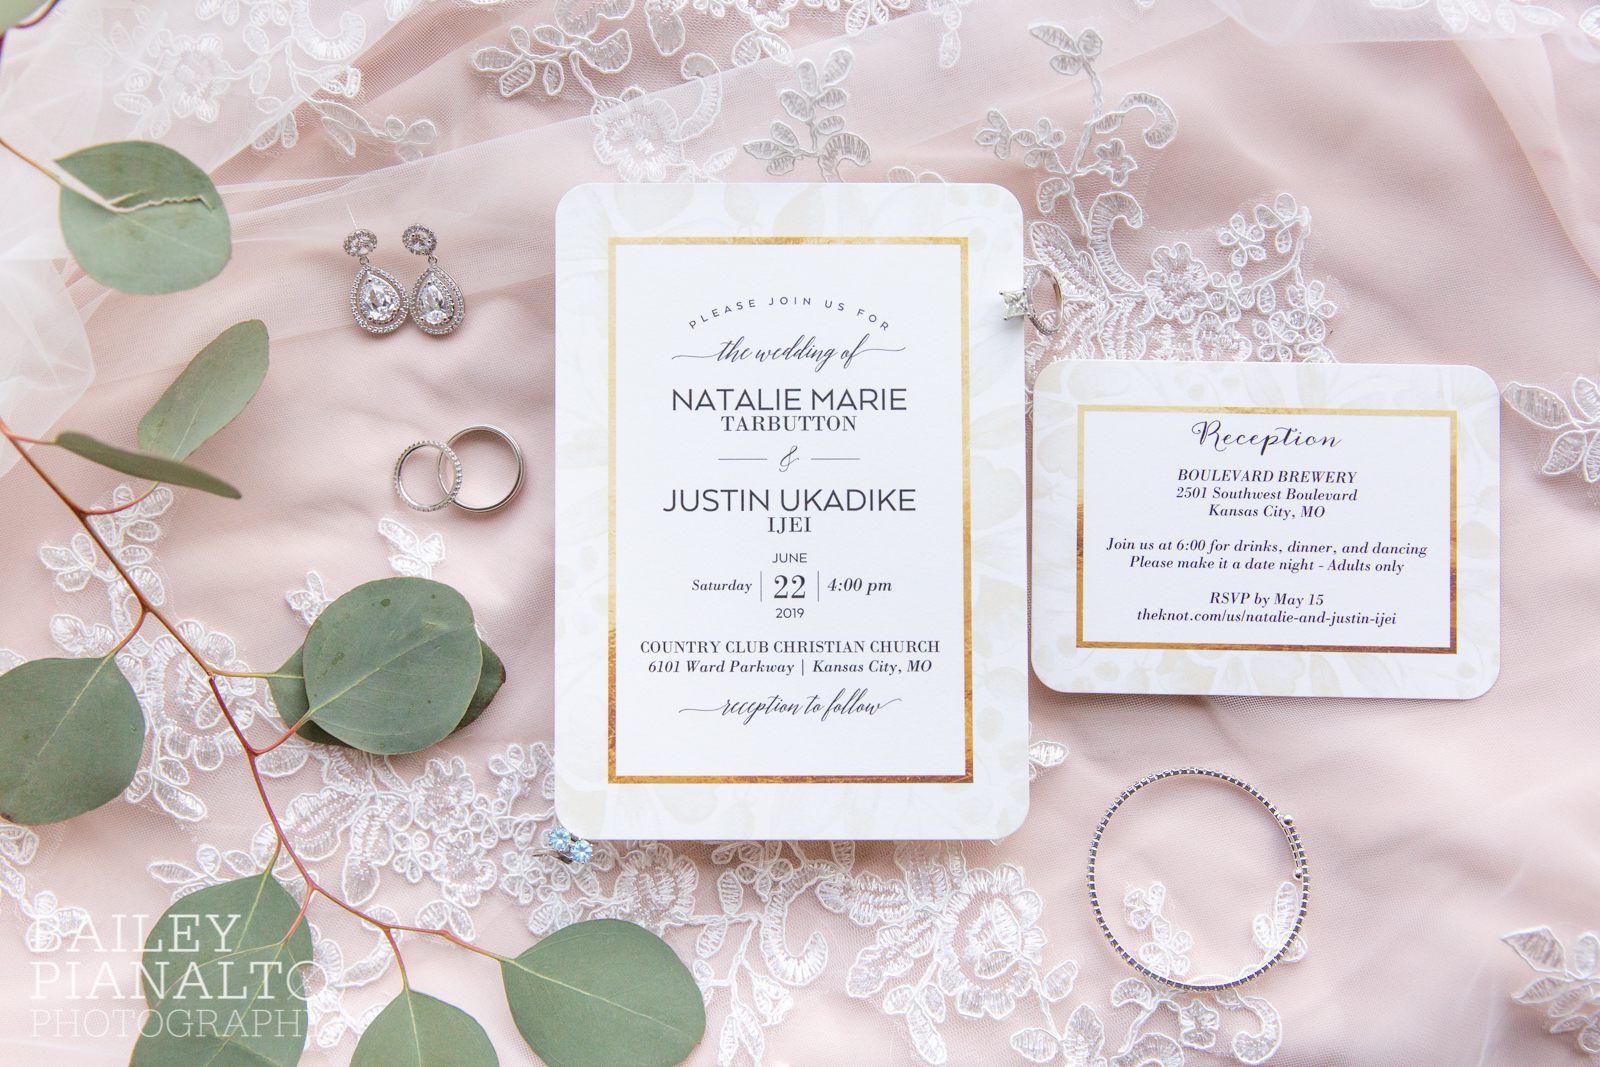 Classic White, Gold & Navy Summertime Wedding Inspiration with Bridal Extraordinaire, Tip Top Tux, Boulevard Brewing Co., and Country Club Christian Church | Kansas City, MO